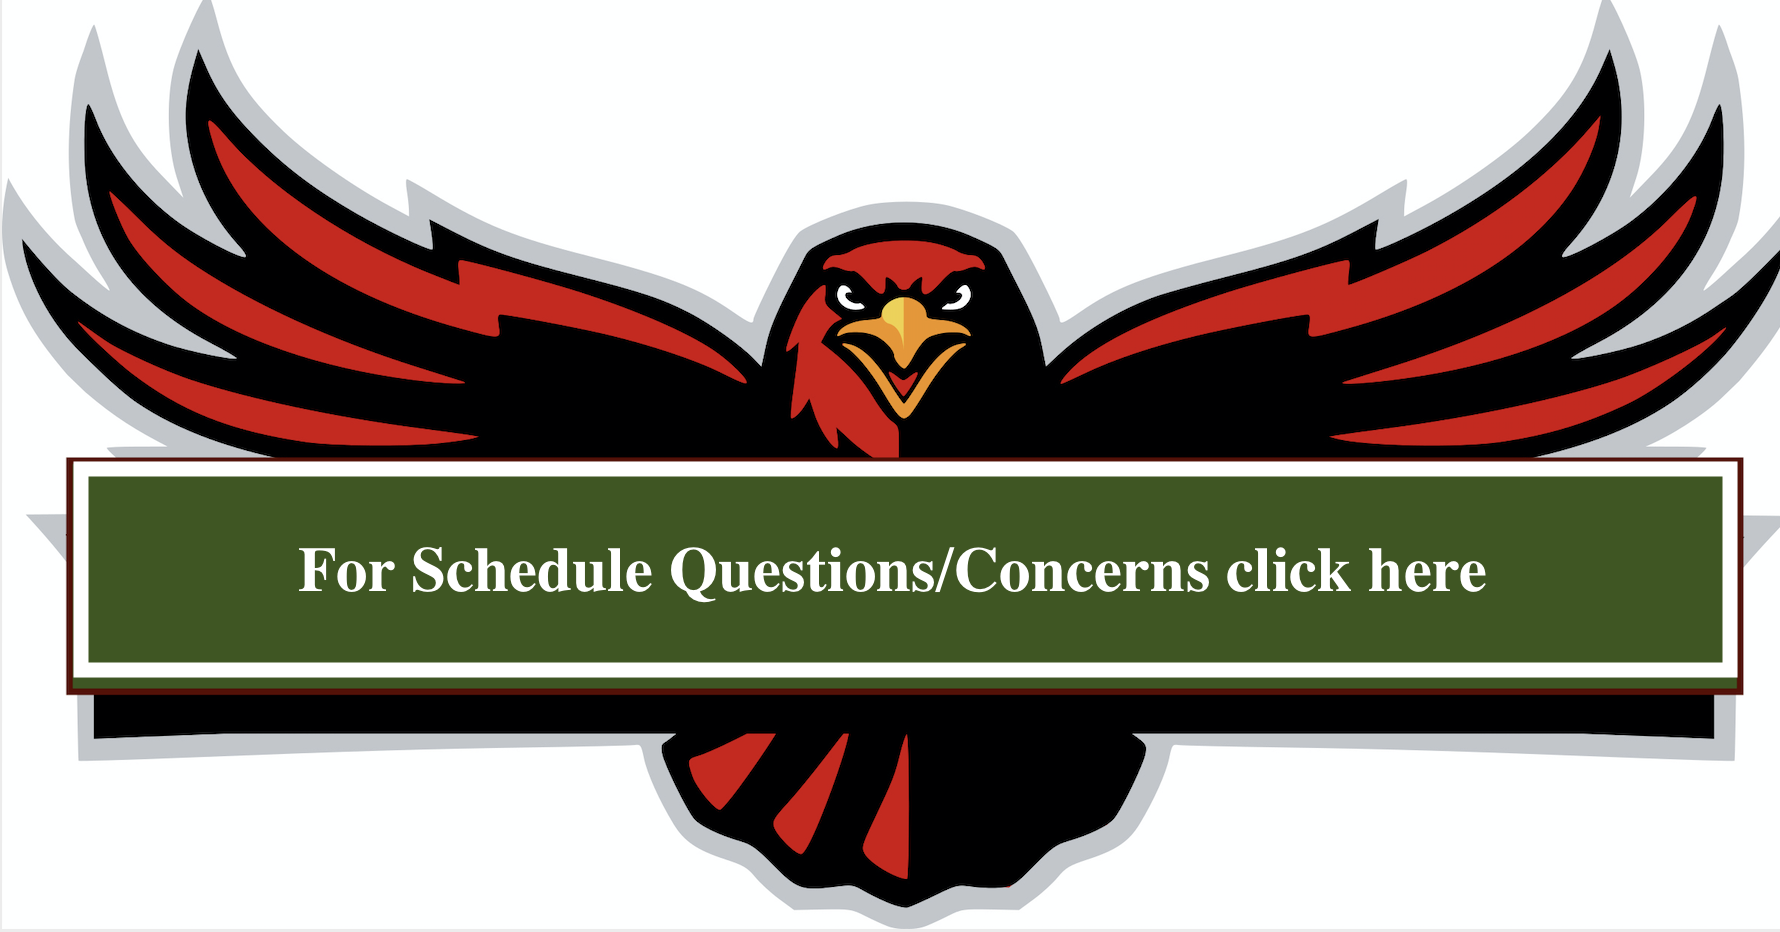 Schedule questions/concerns link to form